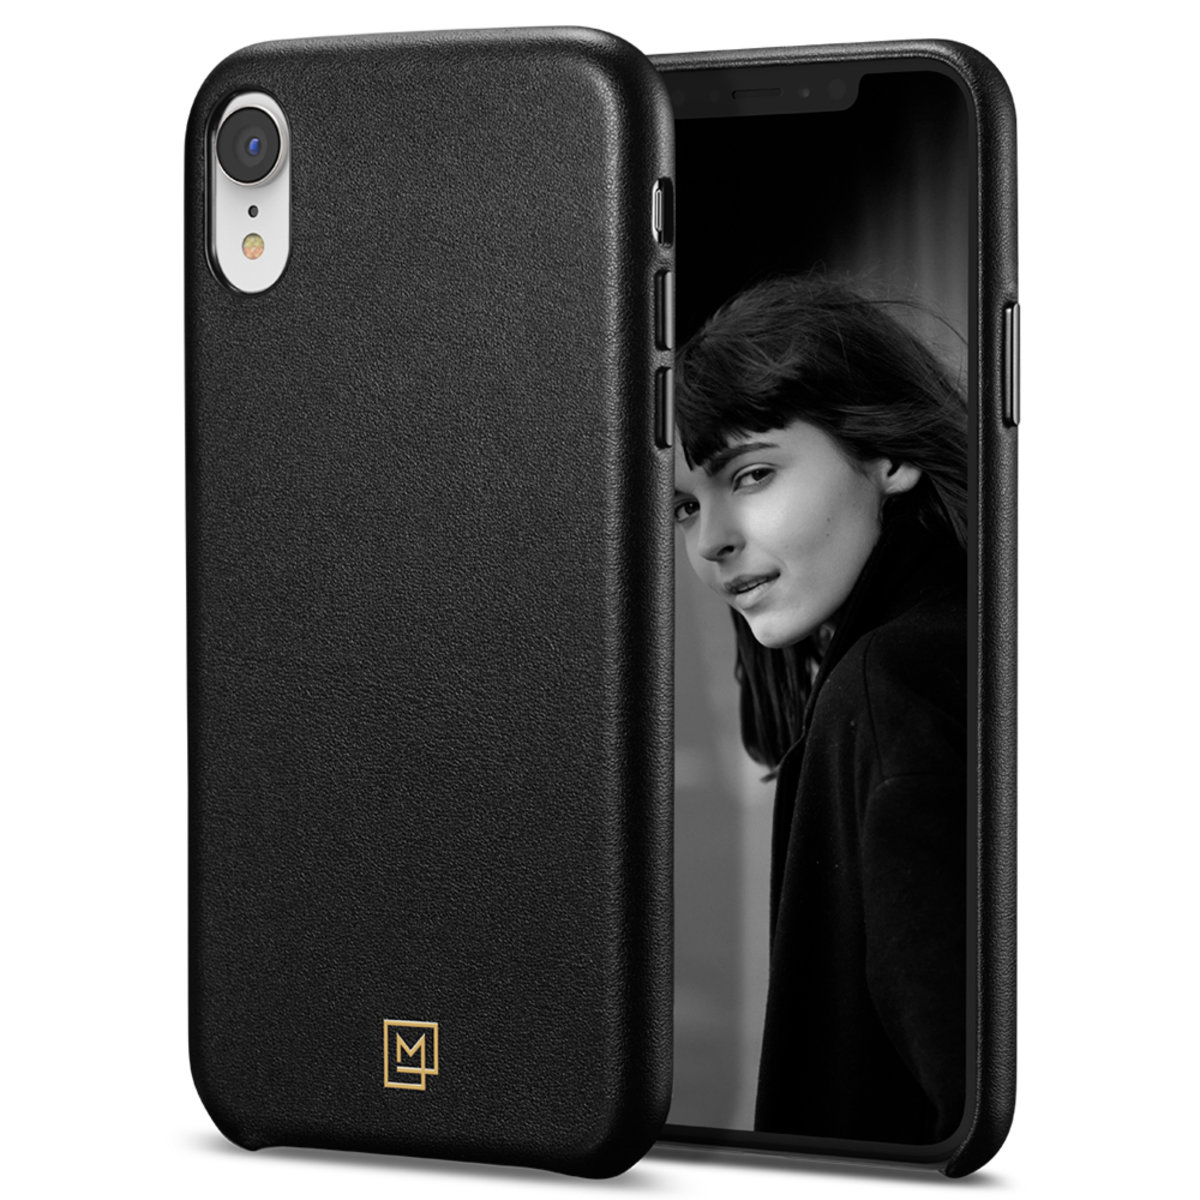 iPhone XR Case La Manon câlin - Chic Black